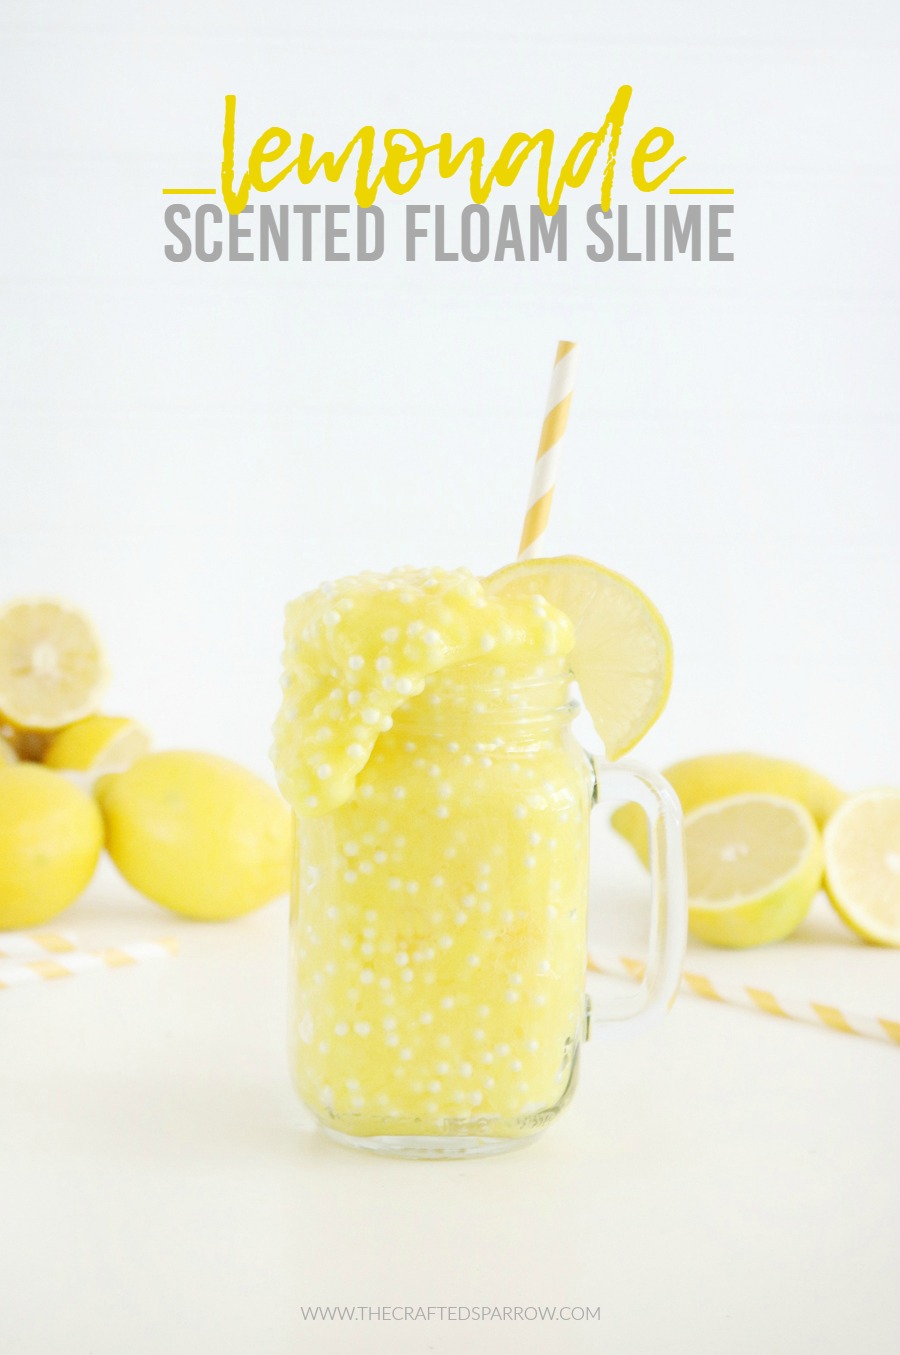 Lemonade Scented Floam Slime